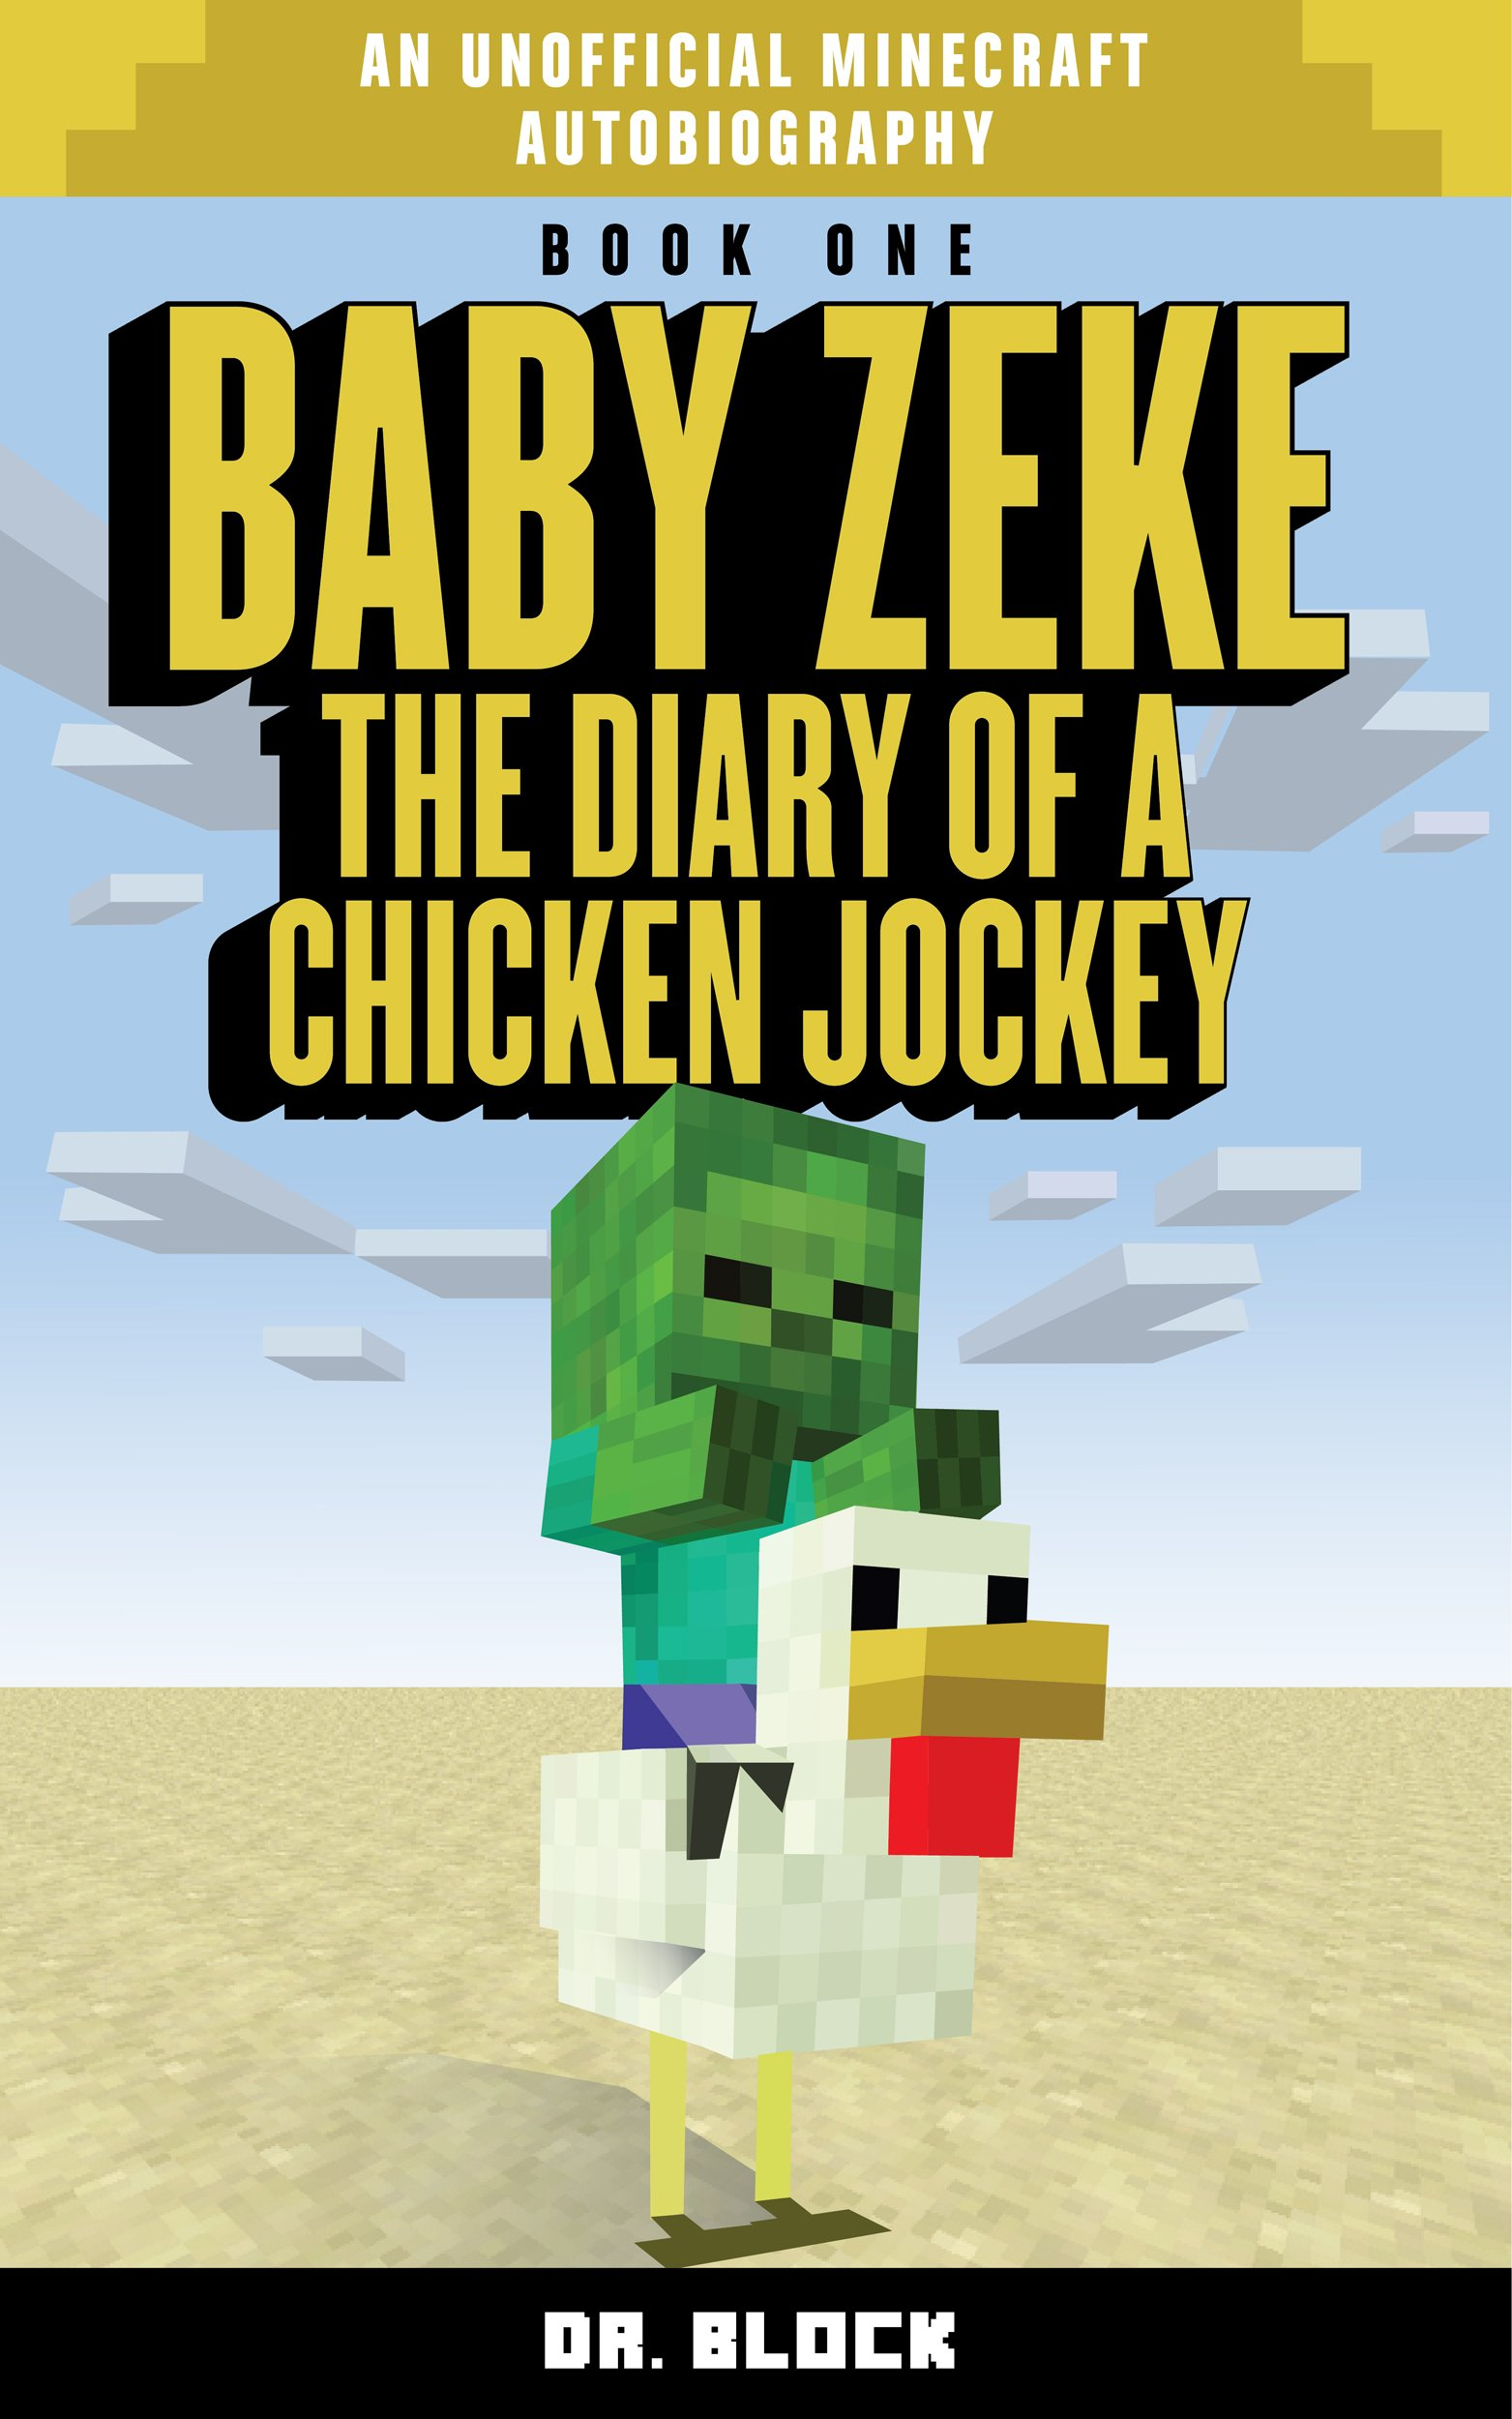 Baby Zeke  The Diary Of A Chicken Jockey  An Unofficial Minecraft Autobiography   Baby Zeke  The Diary Of A Jockey Book 1   English Edition